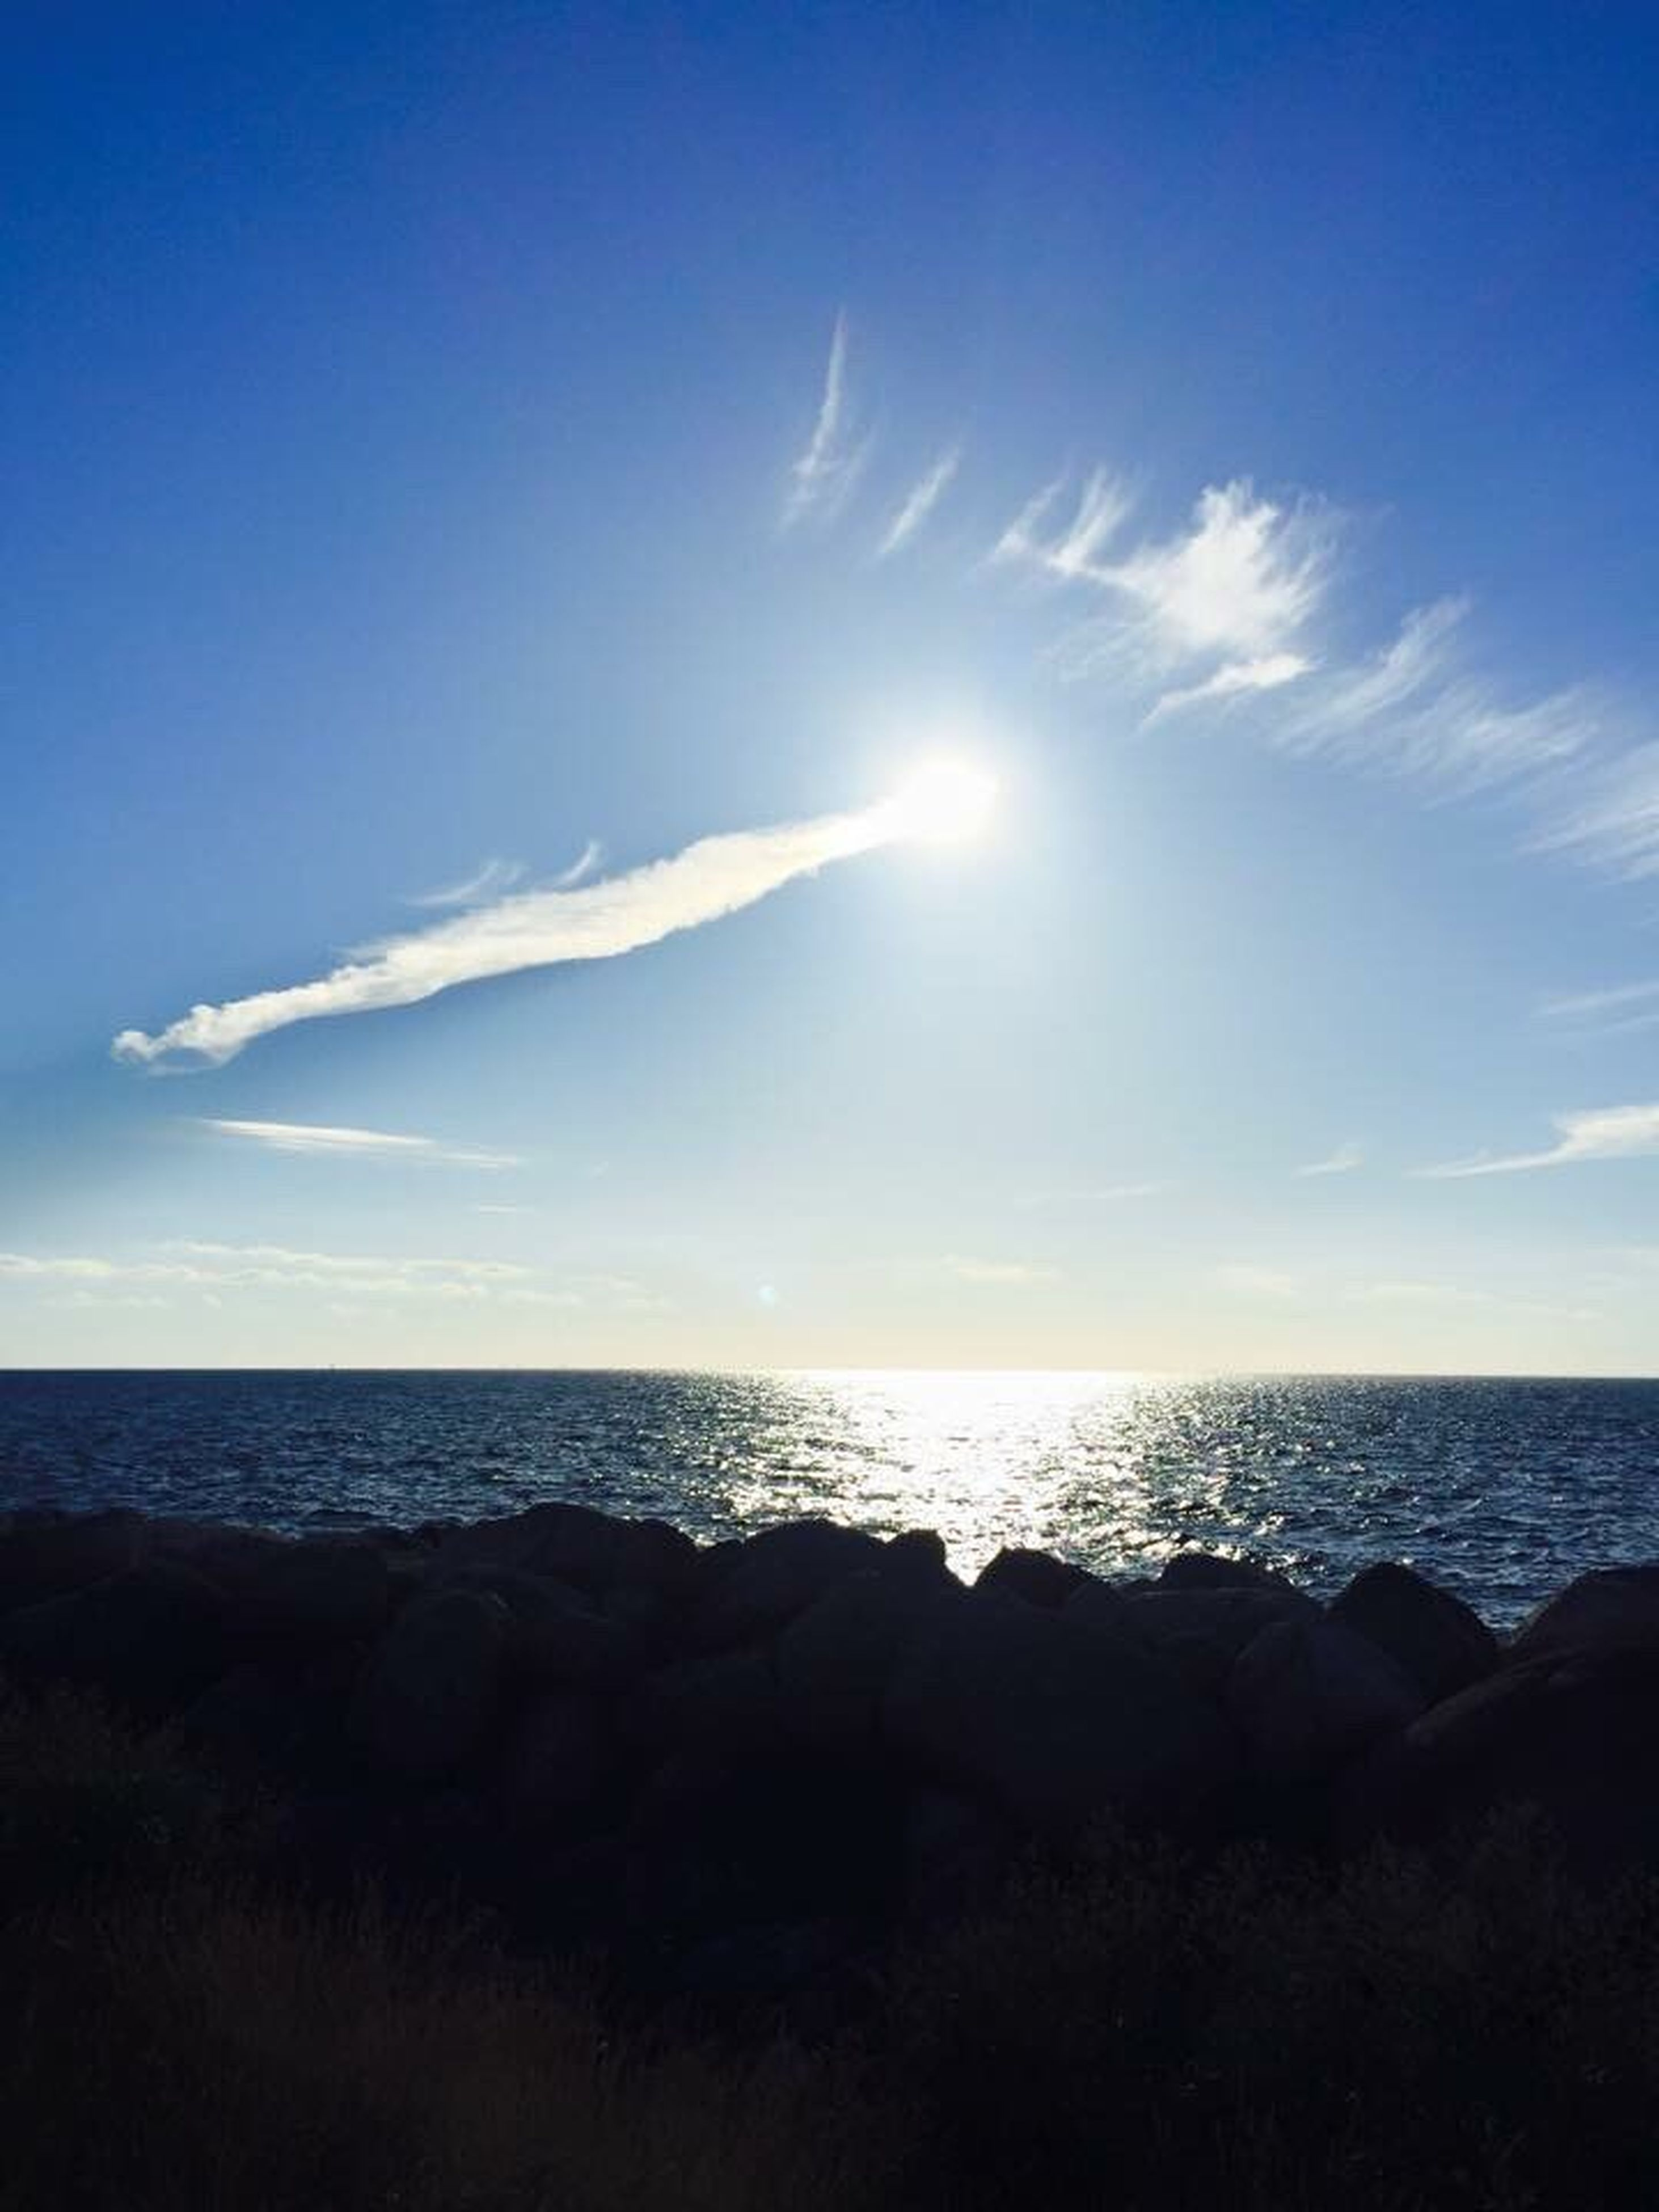 sea, horizon over water, nature, beauty in nature, scenics, tranquility, tranquil scene, sky, water, outdoors, sunlight, beach, no people, sun, day